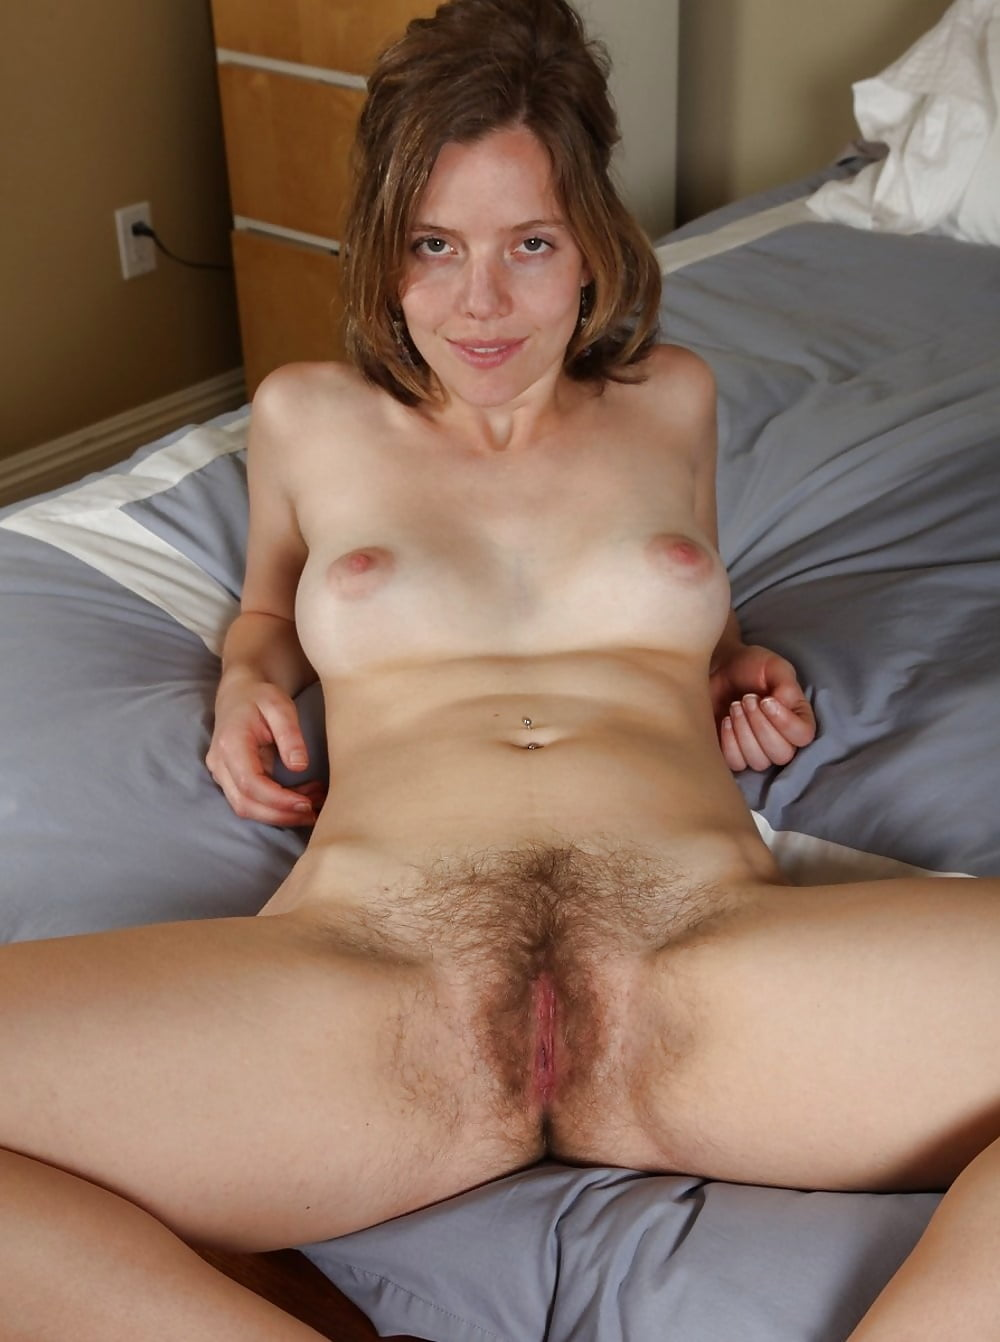 Free Mom Pussy Pics Gallery And Hot Mom Pussy Porn Online